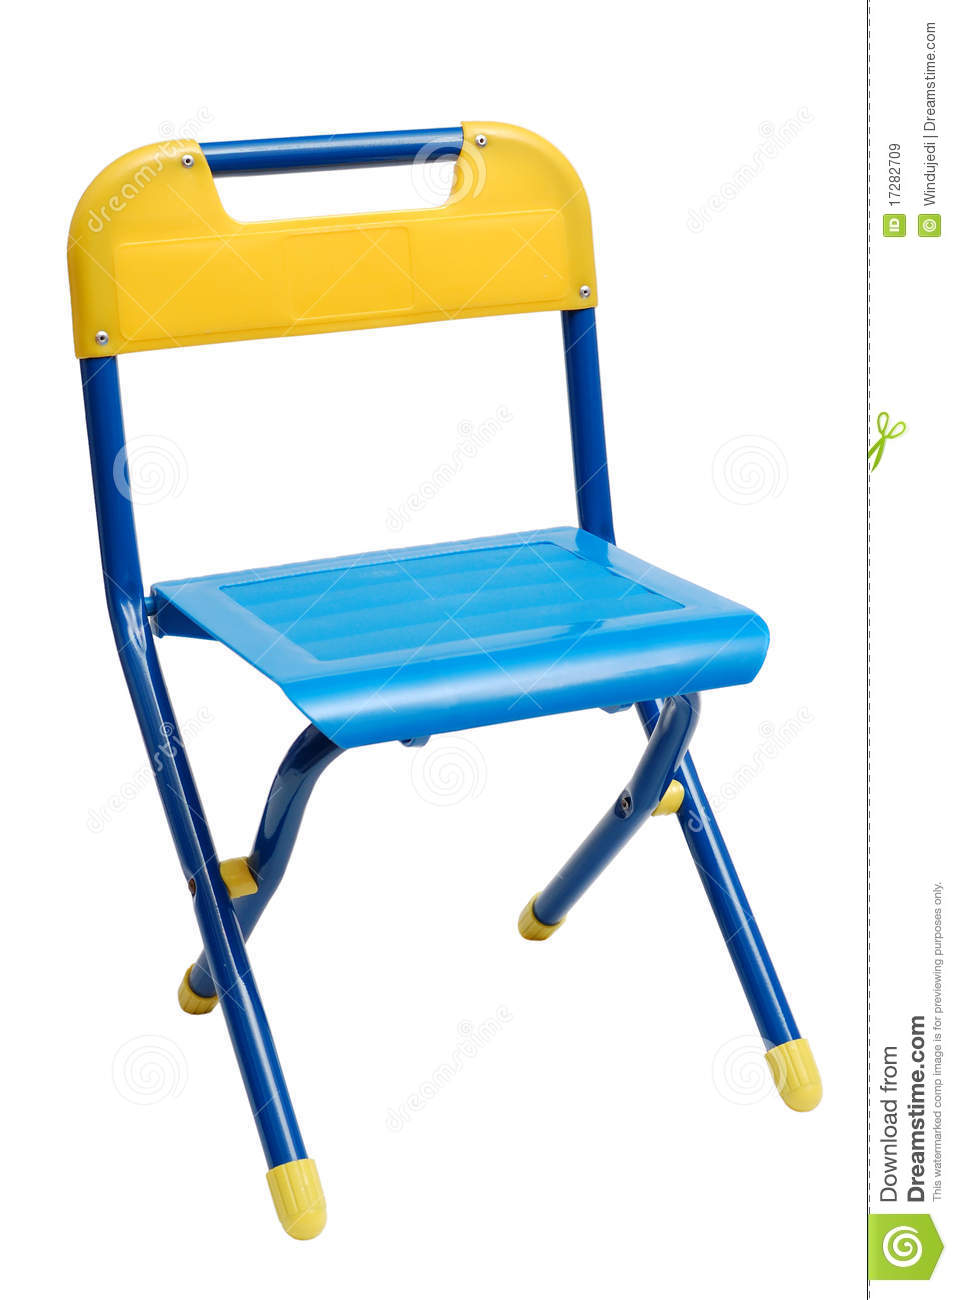 Small Metallic Folding Chair Royalty Free Stock Image